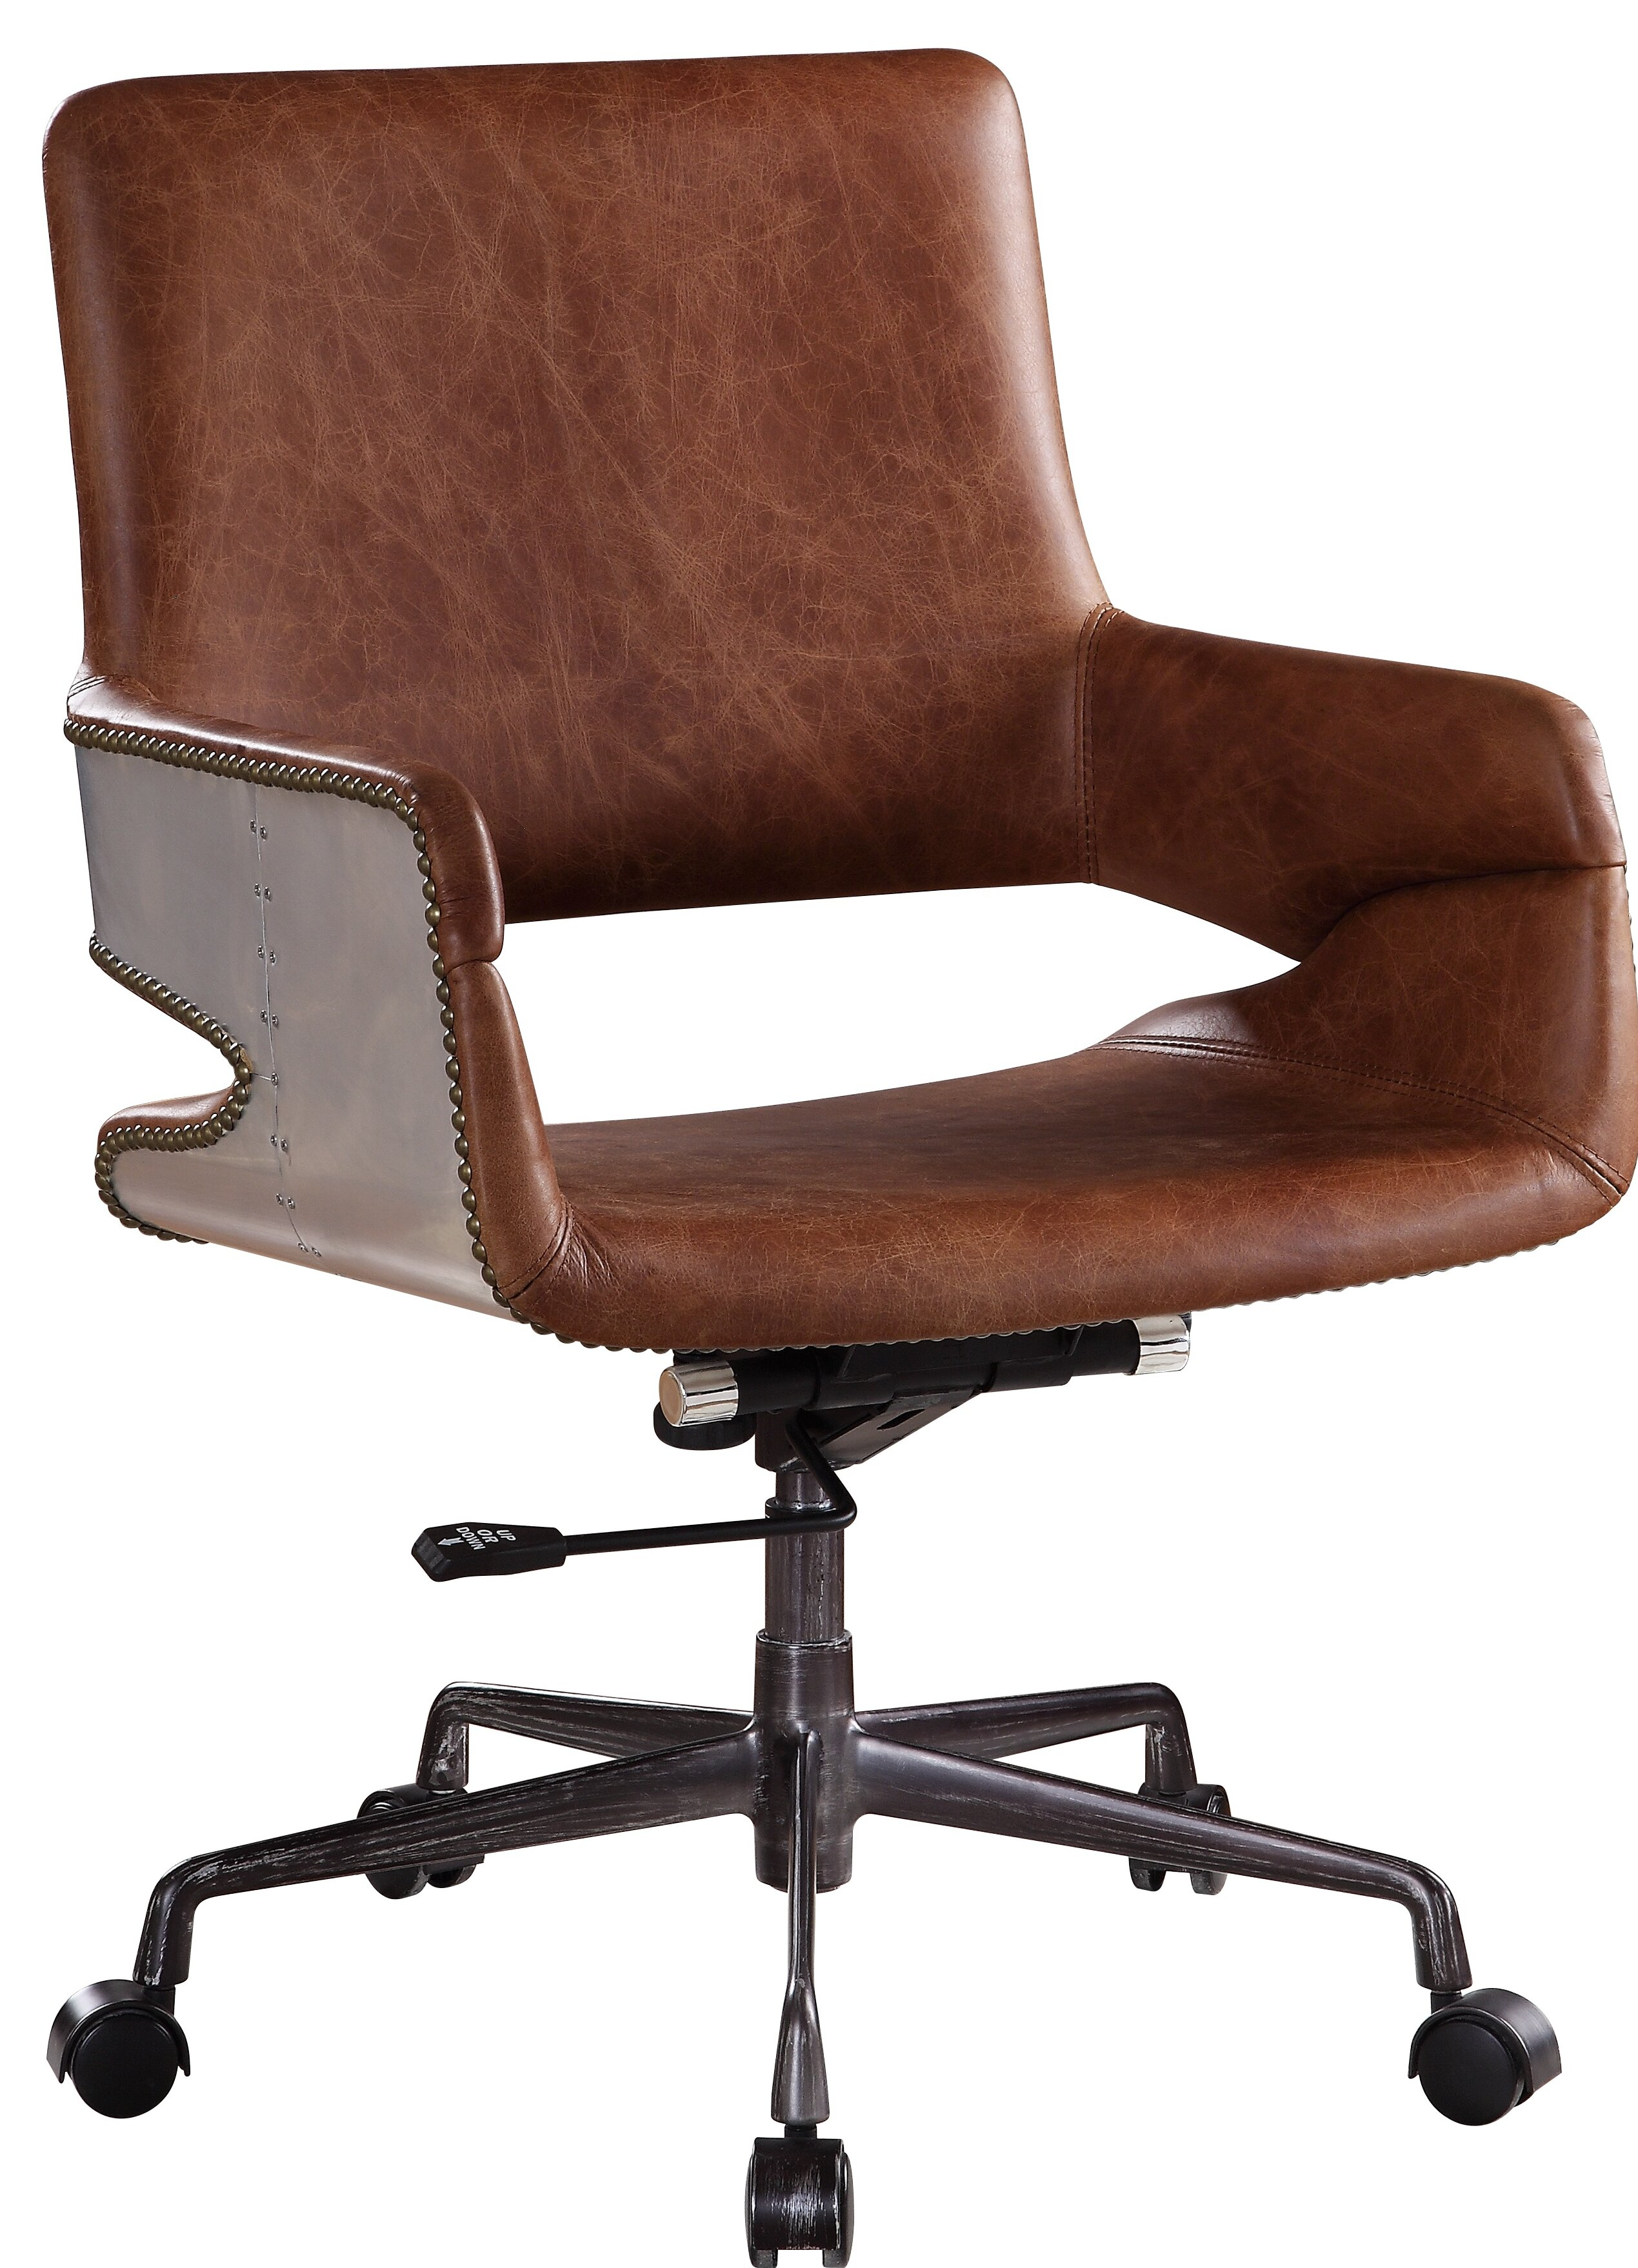 Union Rustic Faux Leather Upholstered